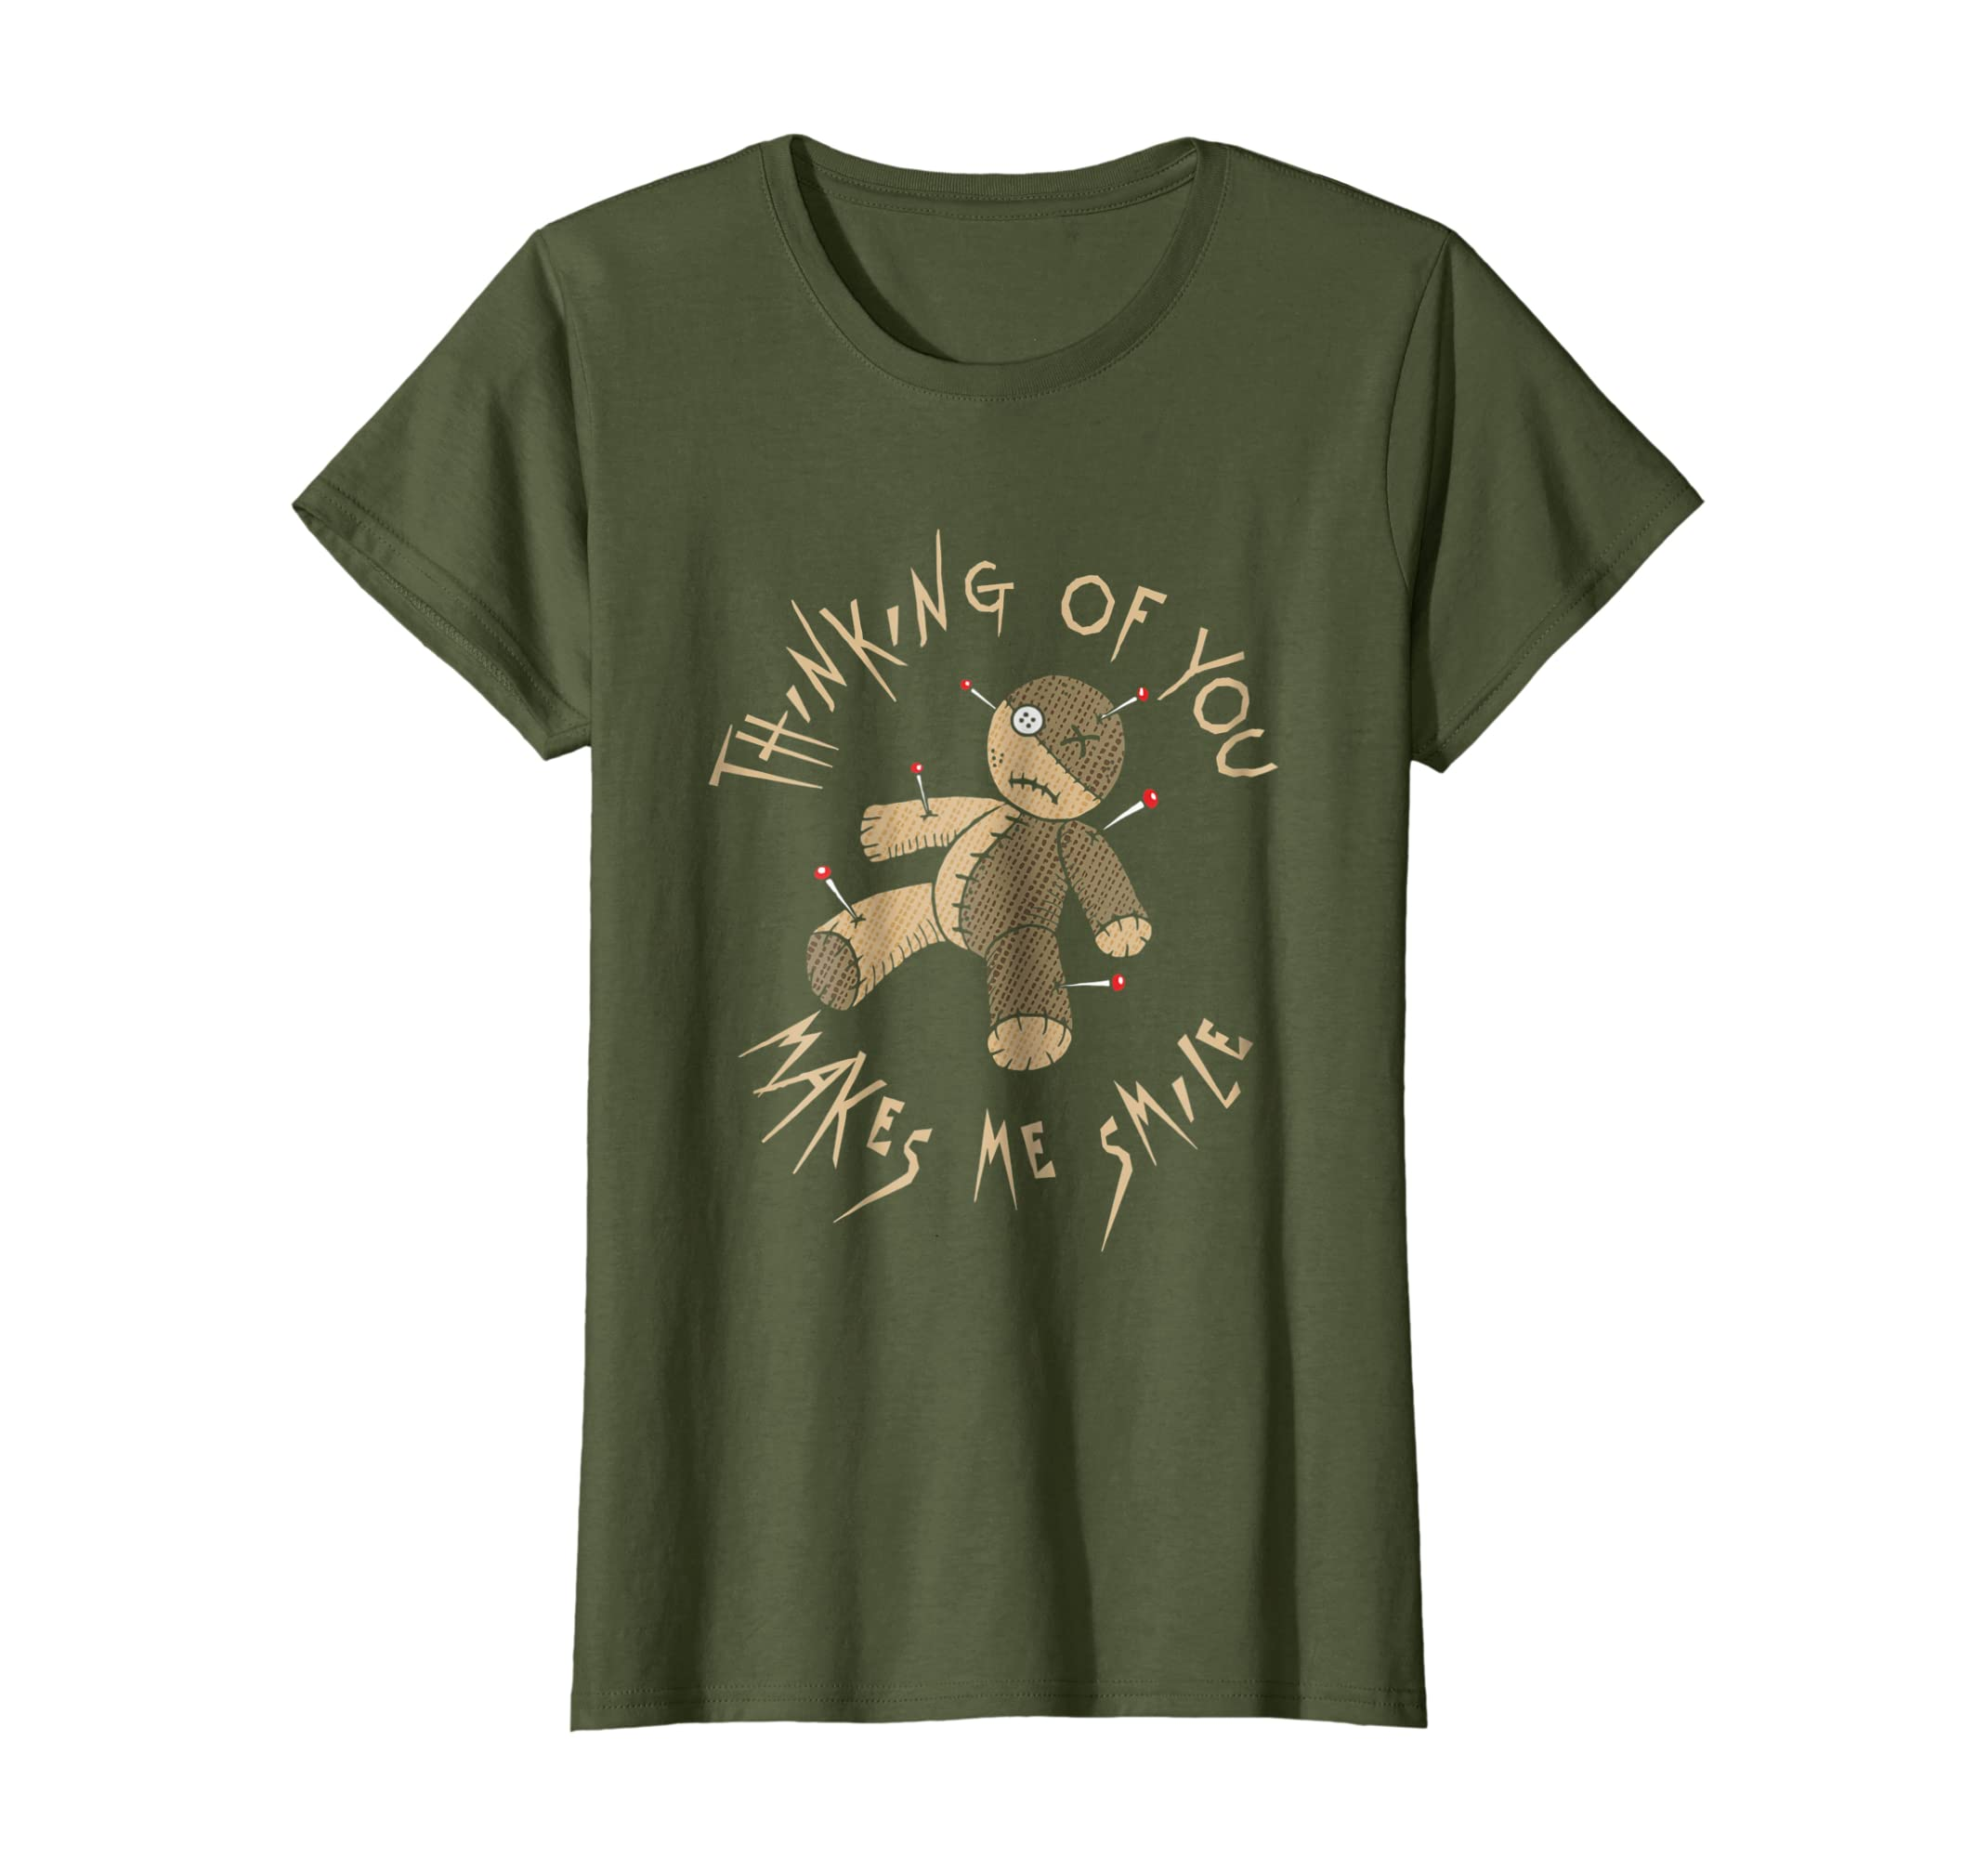 Funny Voodoo Doll Thinking of You Makes Me Smile t shirt-Awarplus